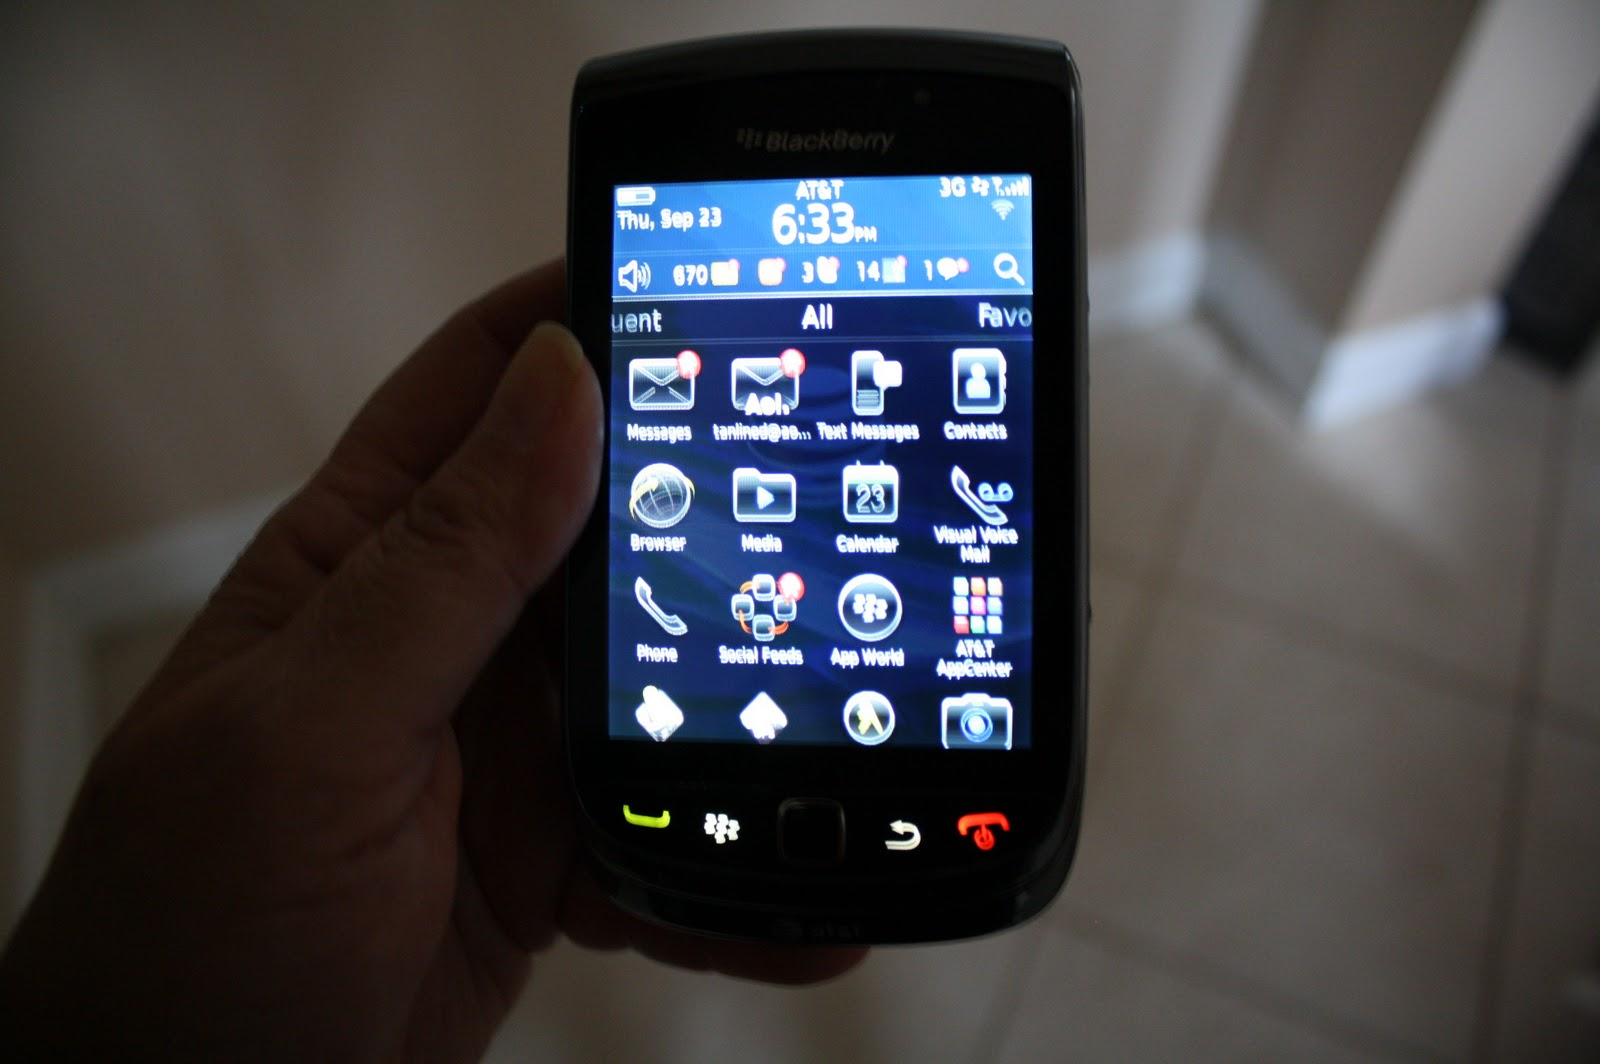 touch screen phones without data plan 2592 1944